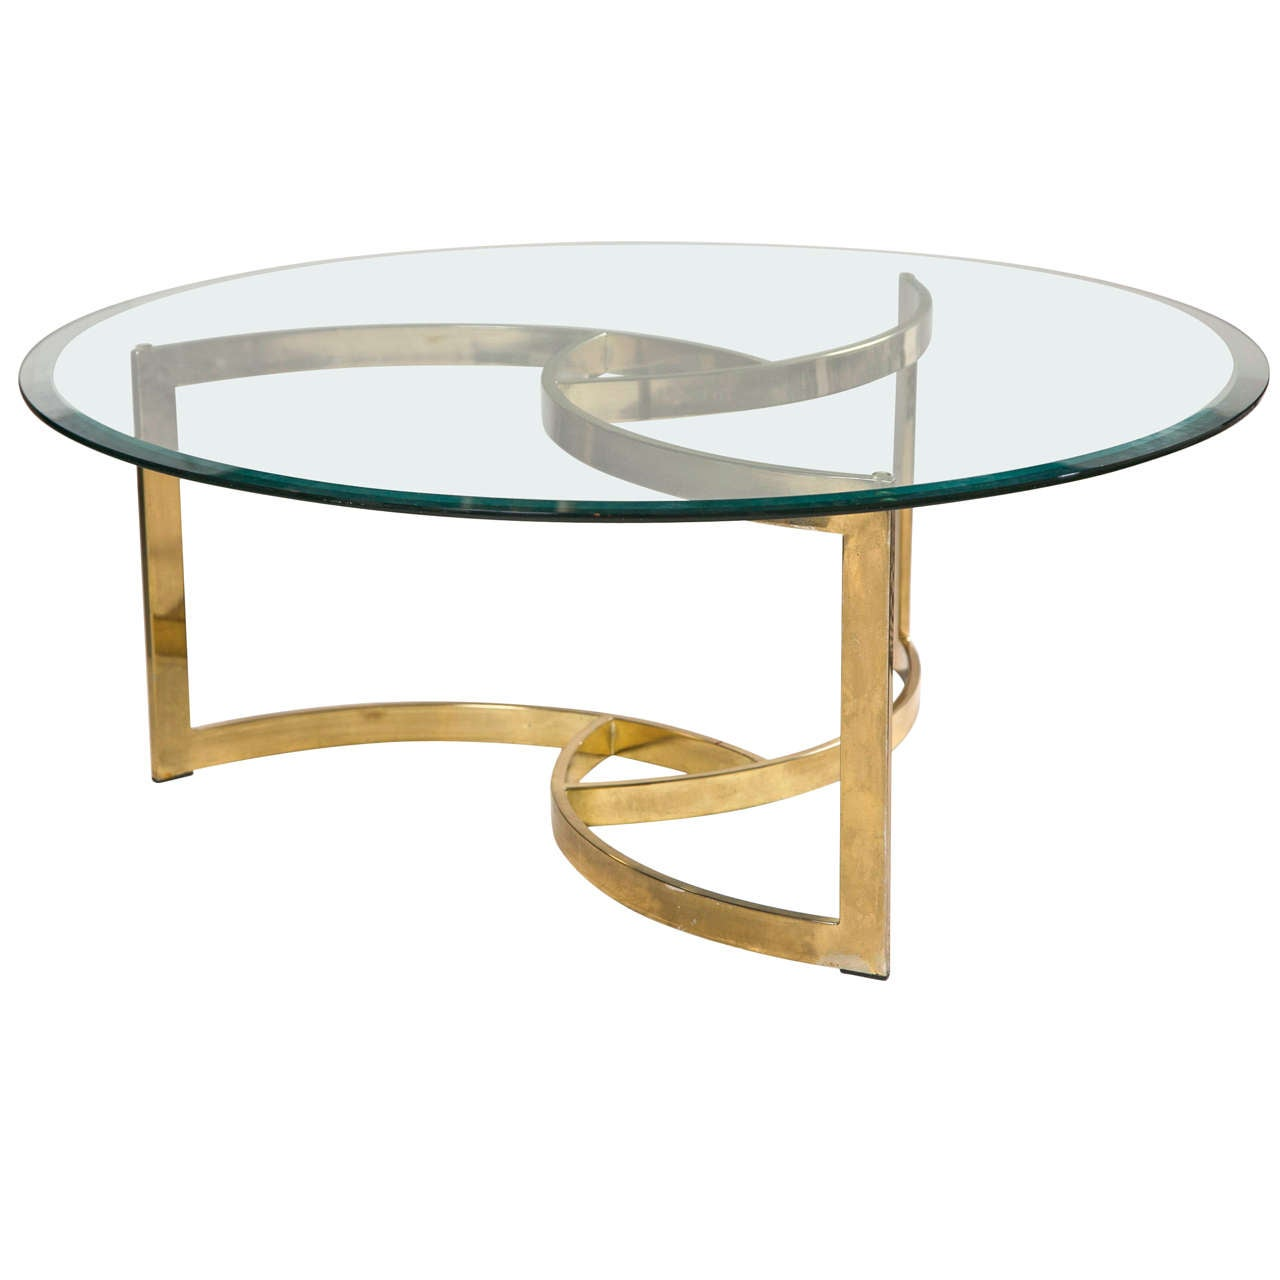 Messing Couchtisch Mit Glasplatte Mid Century Brass Swirl Base With Round Glass Top Coffee